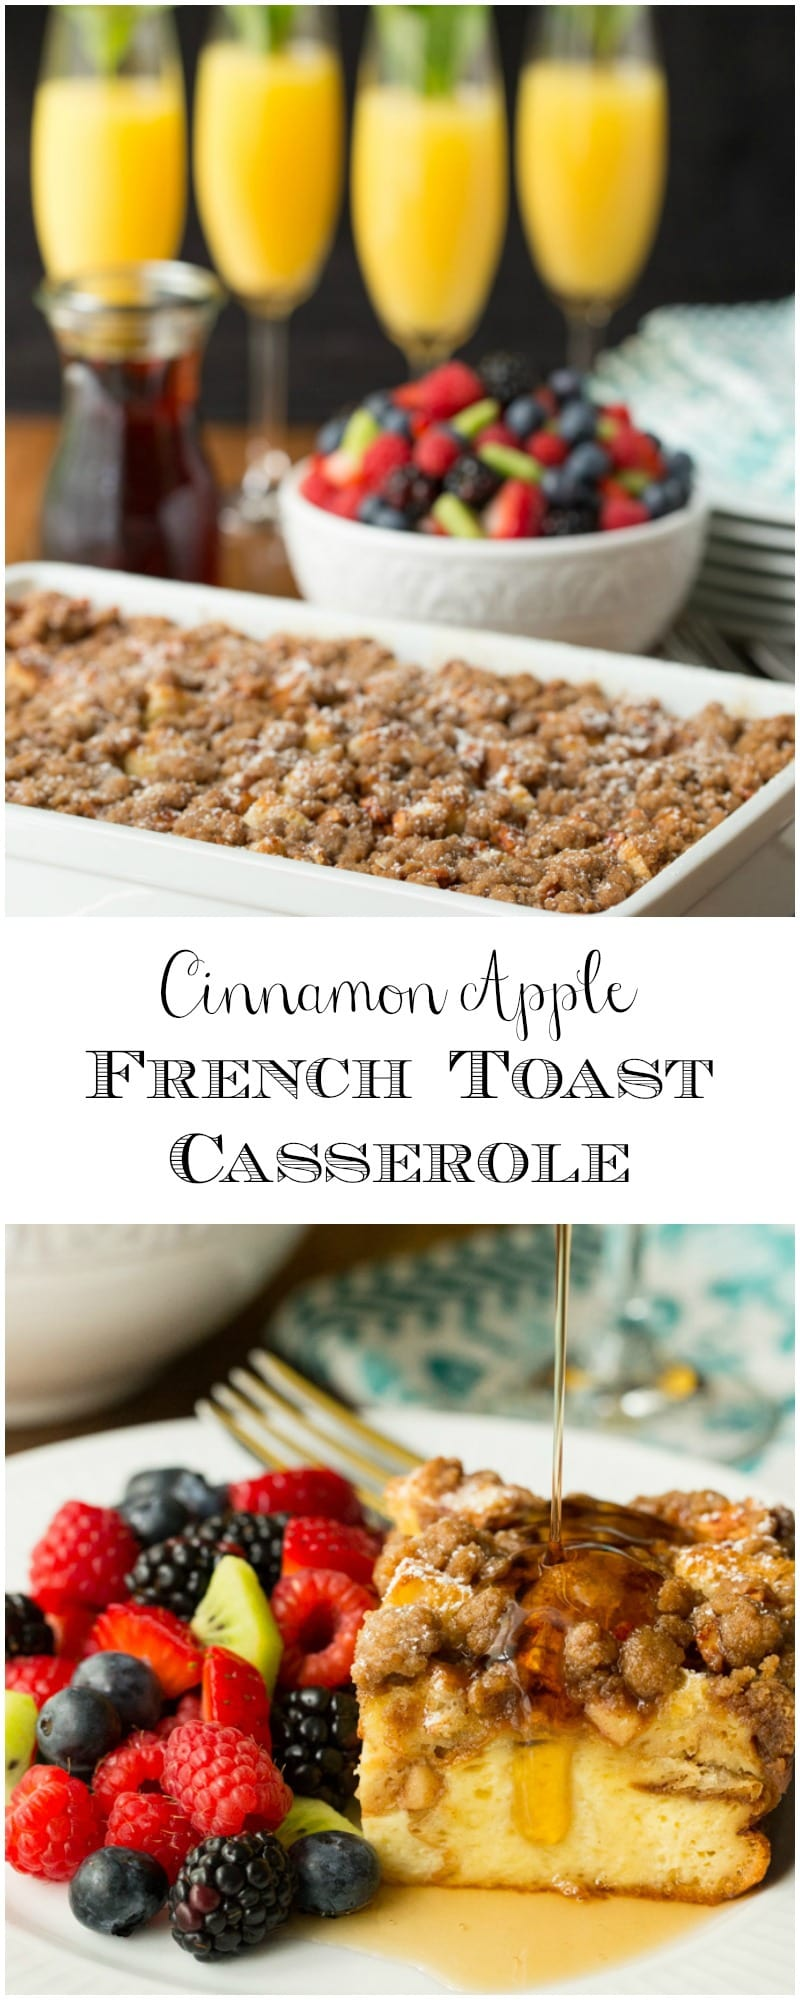 You're going to love this crazy delicious overnight Cinnamon Apple French Toast casserole. Prep it the night before - in the morning, breakfast is simple!